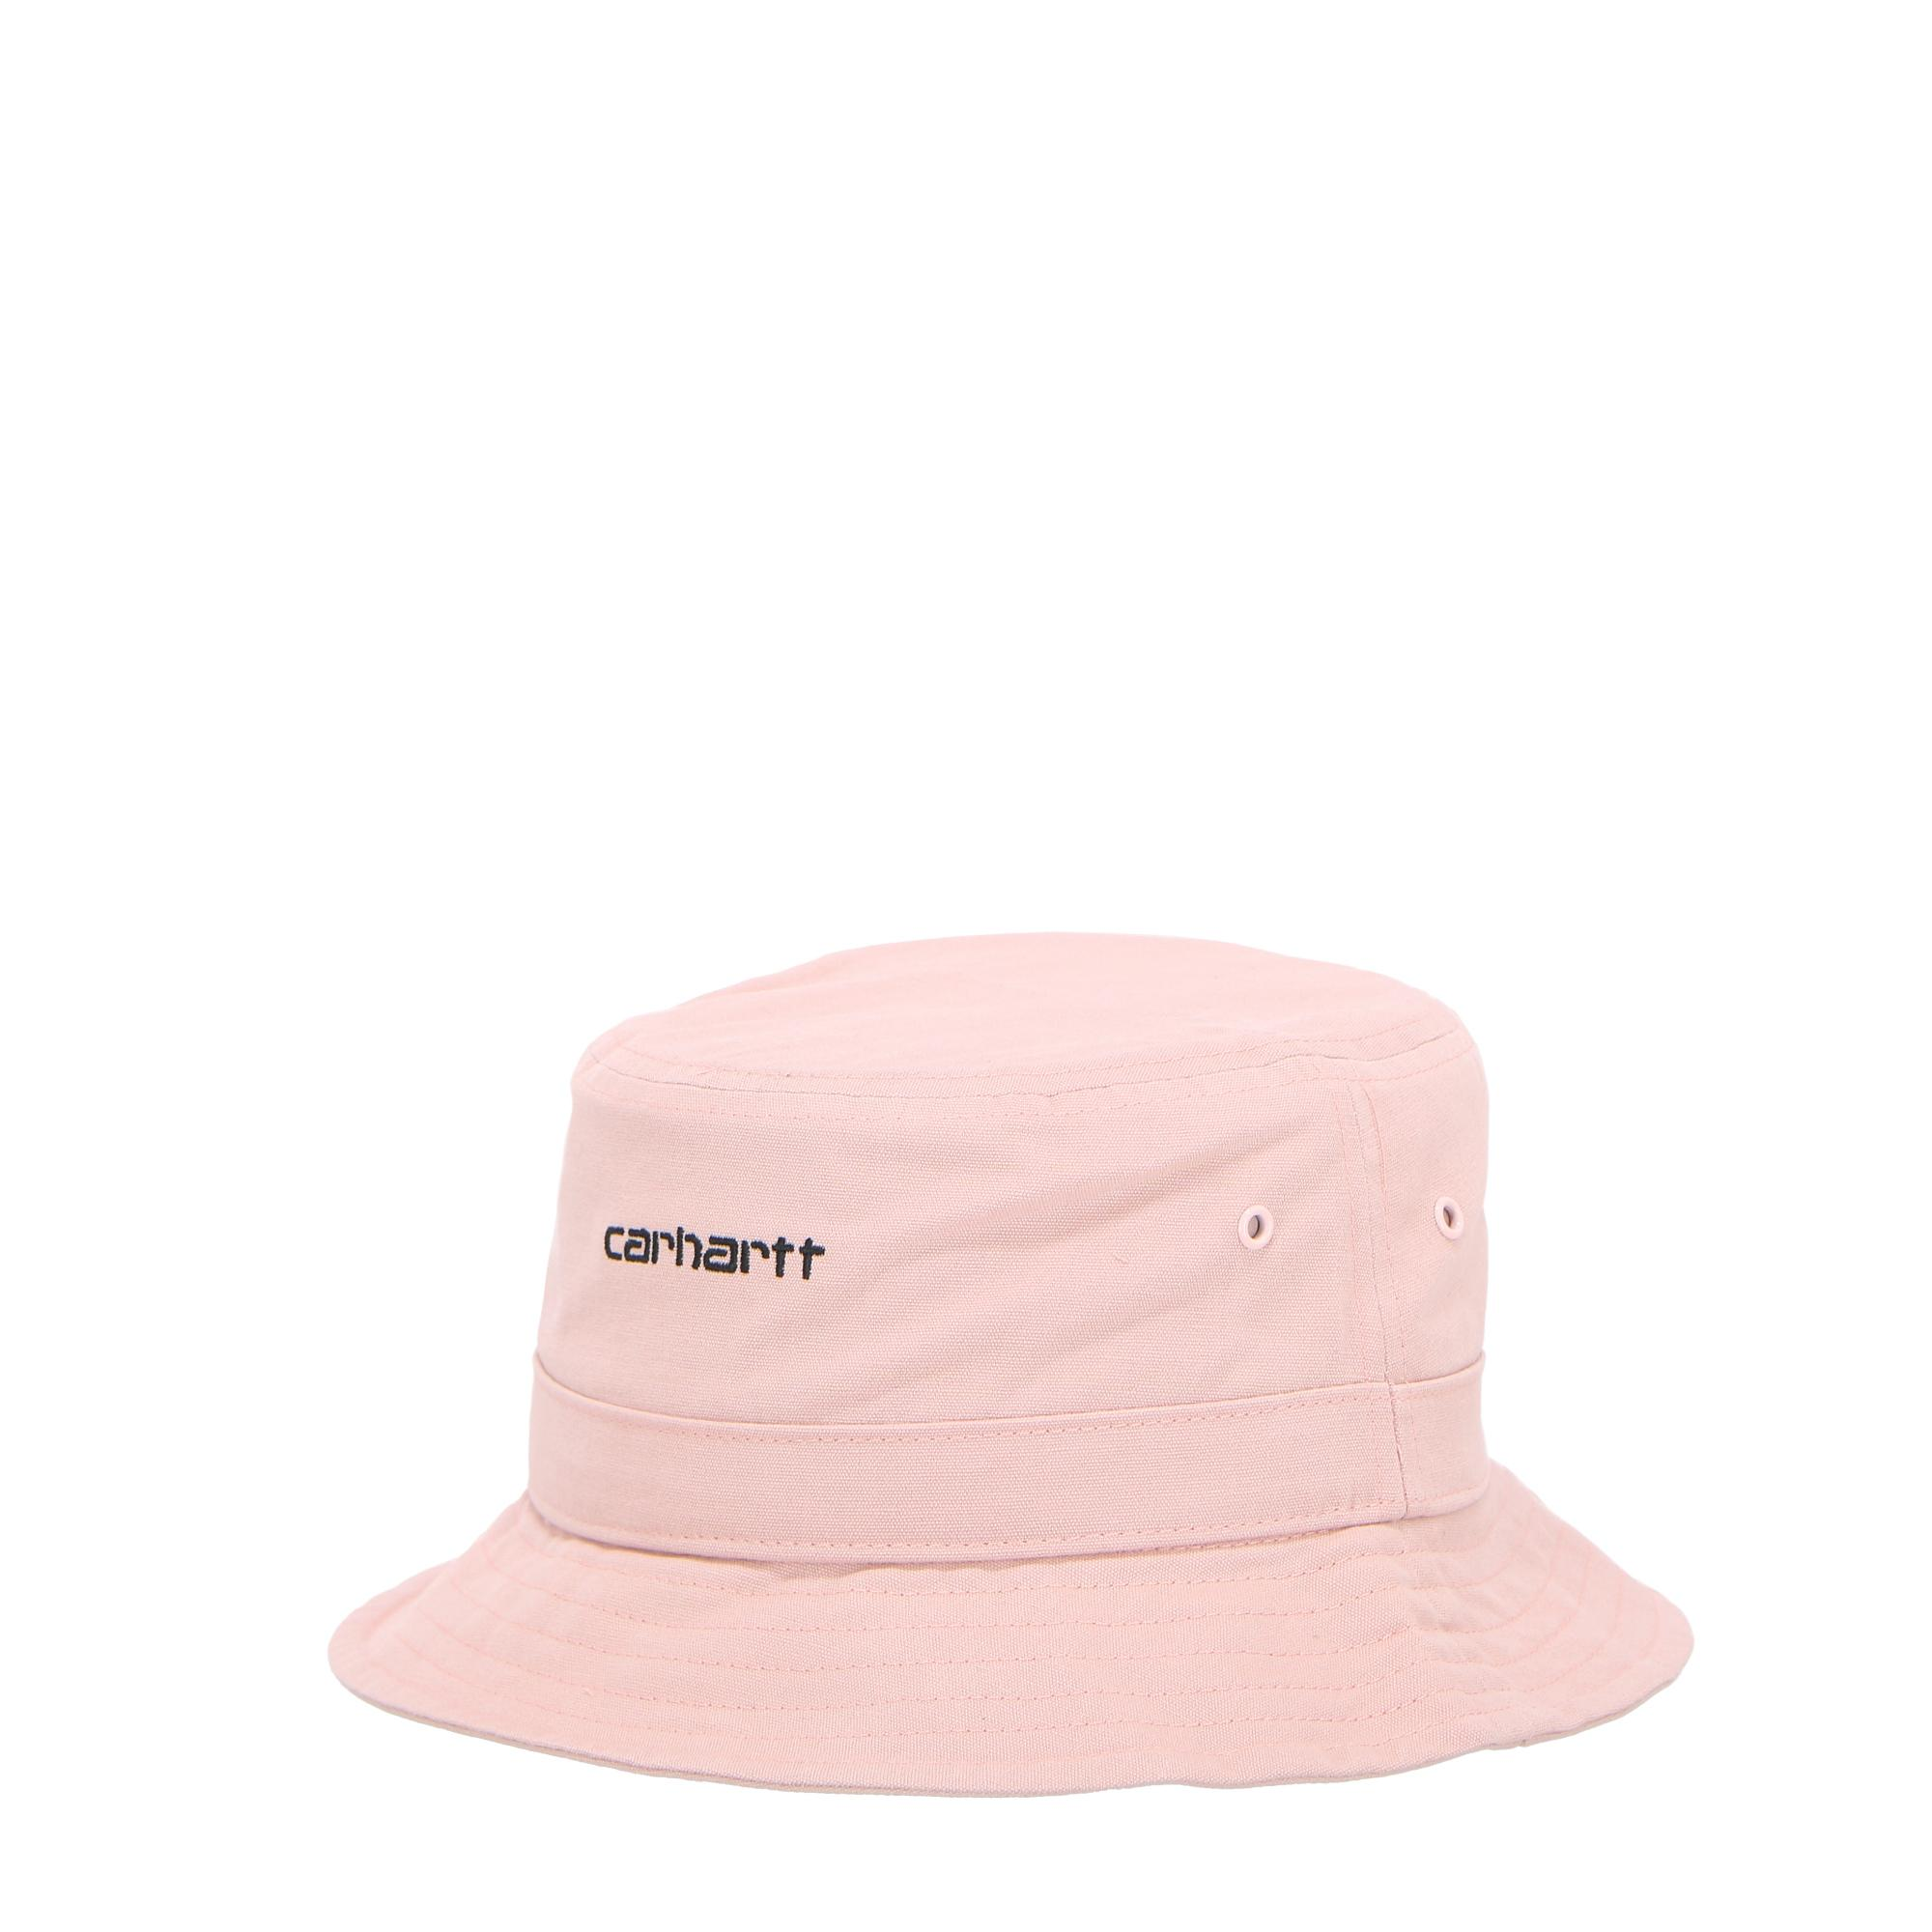 Carhartt Script Bucket Hat Frosted pink black